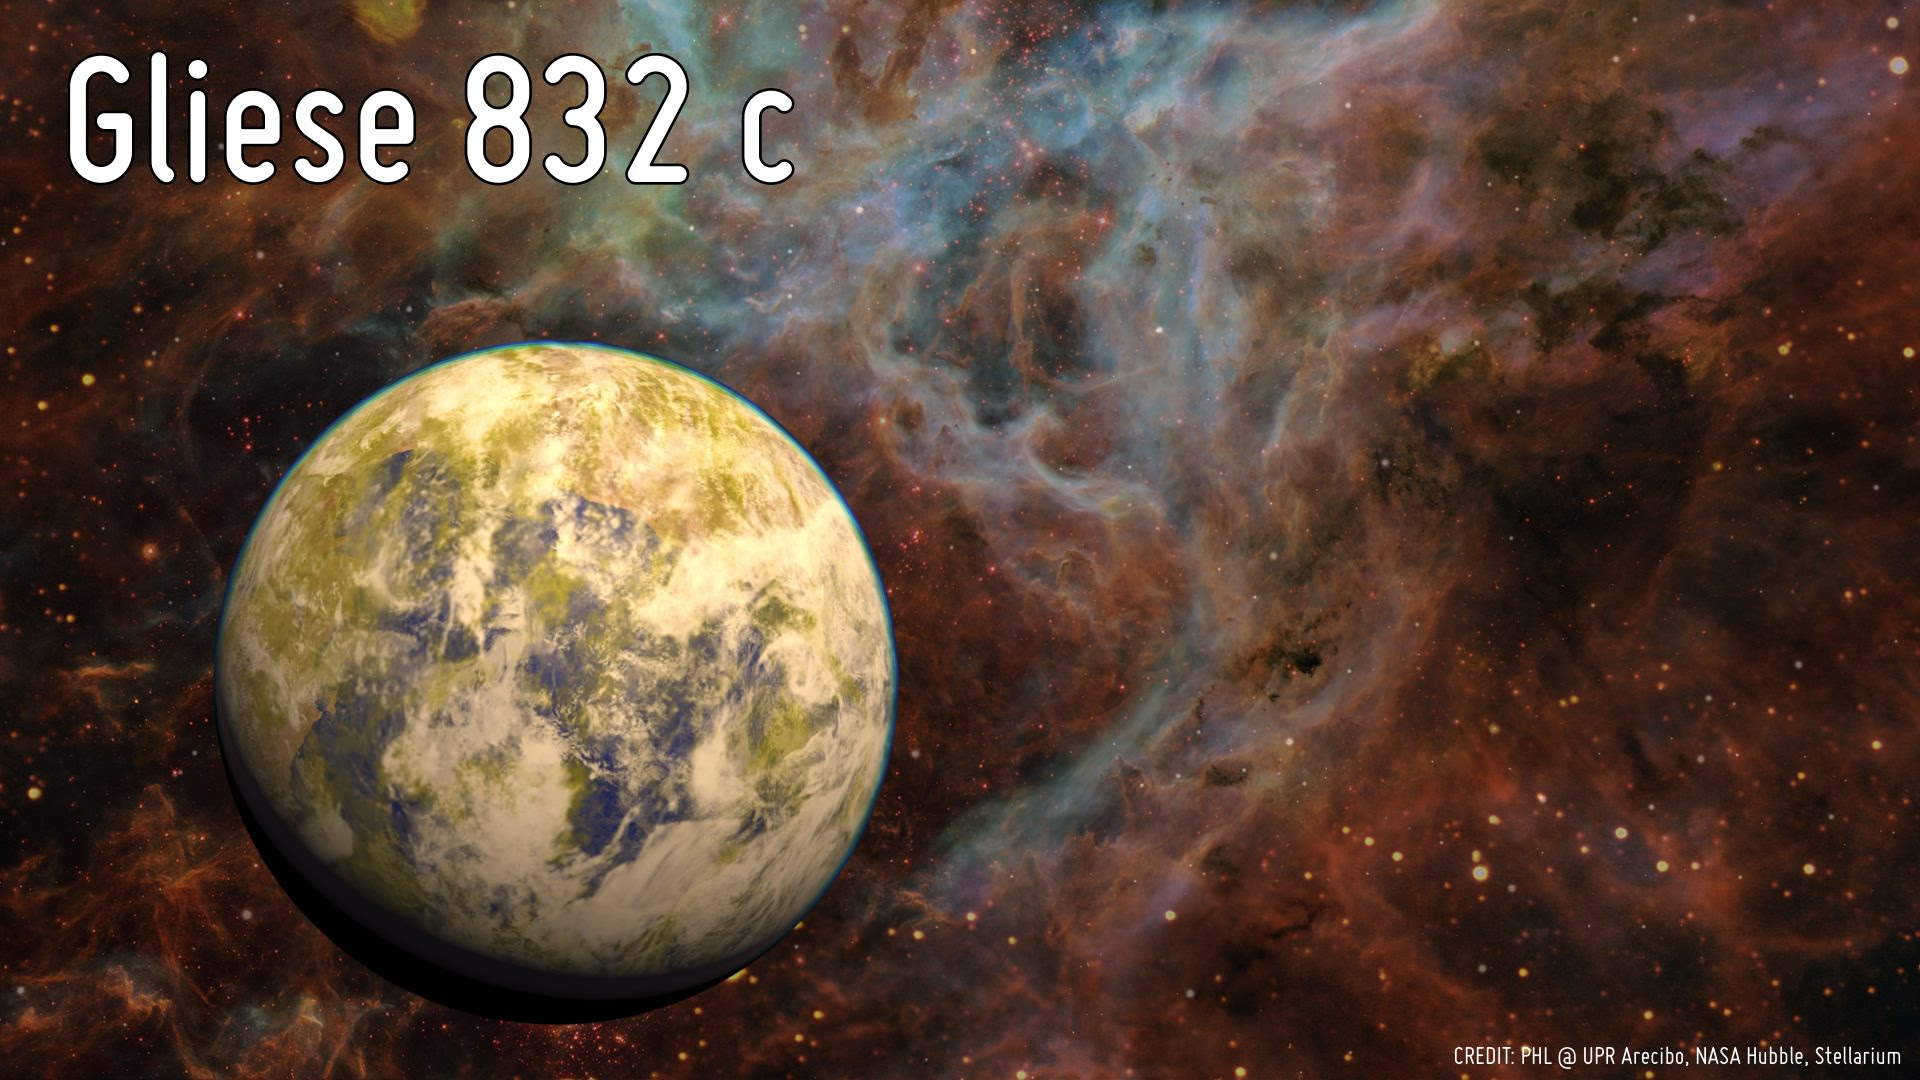 An artistic representation of Gliese 832 c against a stellar nebula background. A new paper says Gliese 832 might be home to another planet similar to this, but in the habitable zone. Credit: Planetary Habitability Laboratory at the University of Puerto Rico, Arecibo, NASA/Hubble, Stellarium.